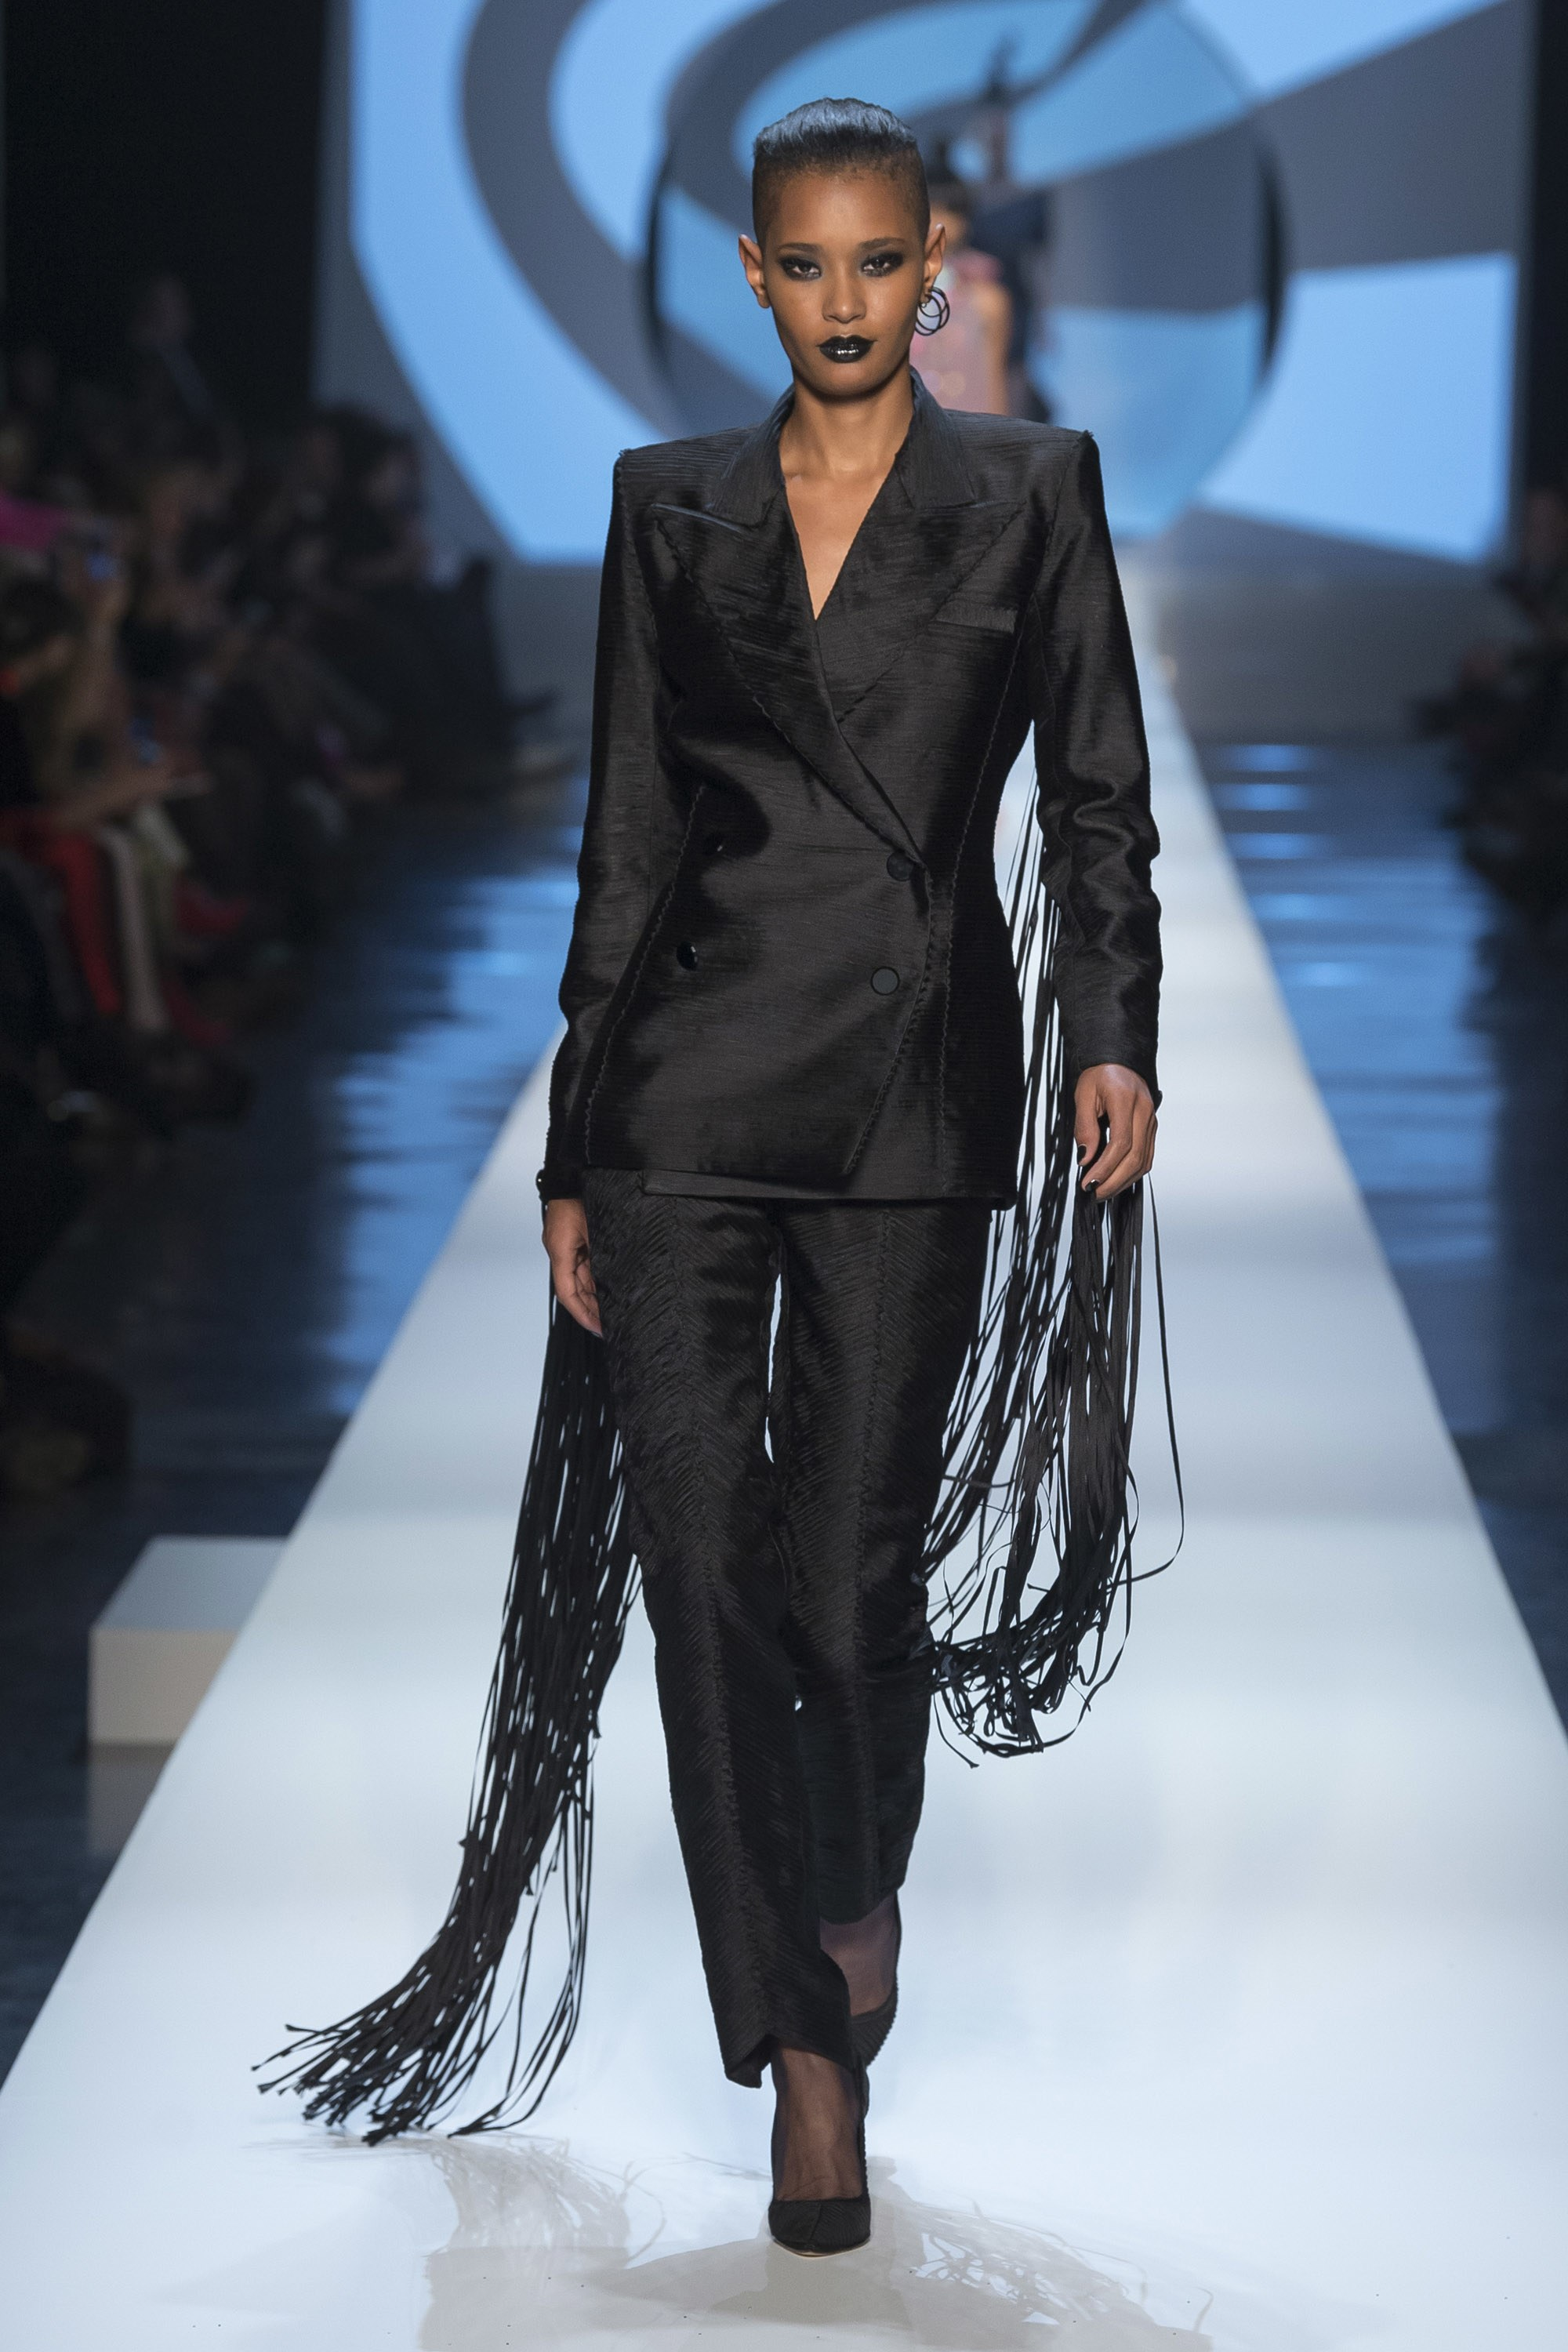 Paris Fashion Week Spring 2018 - Jean Paul Gaultier - Photo Yannis Vlamos Indigital.tv - Model Ysaunny Brito